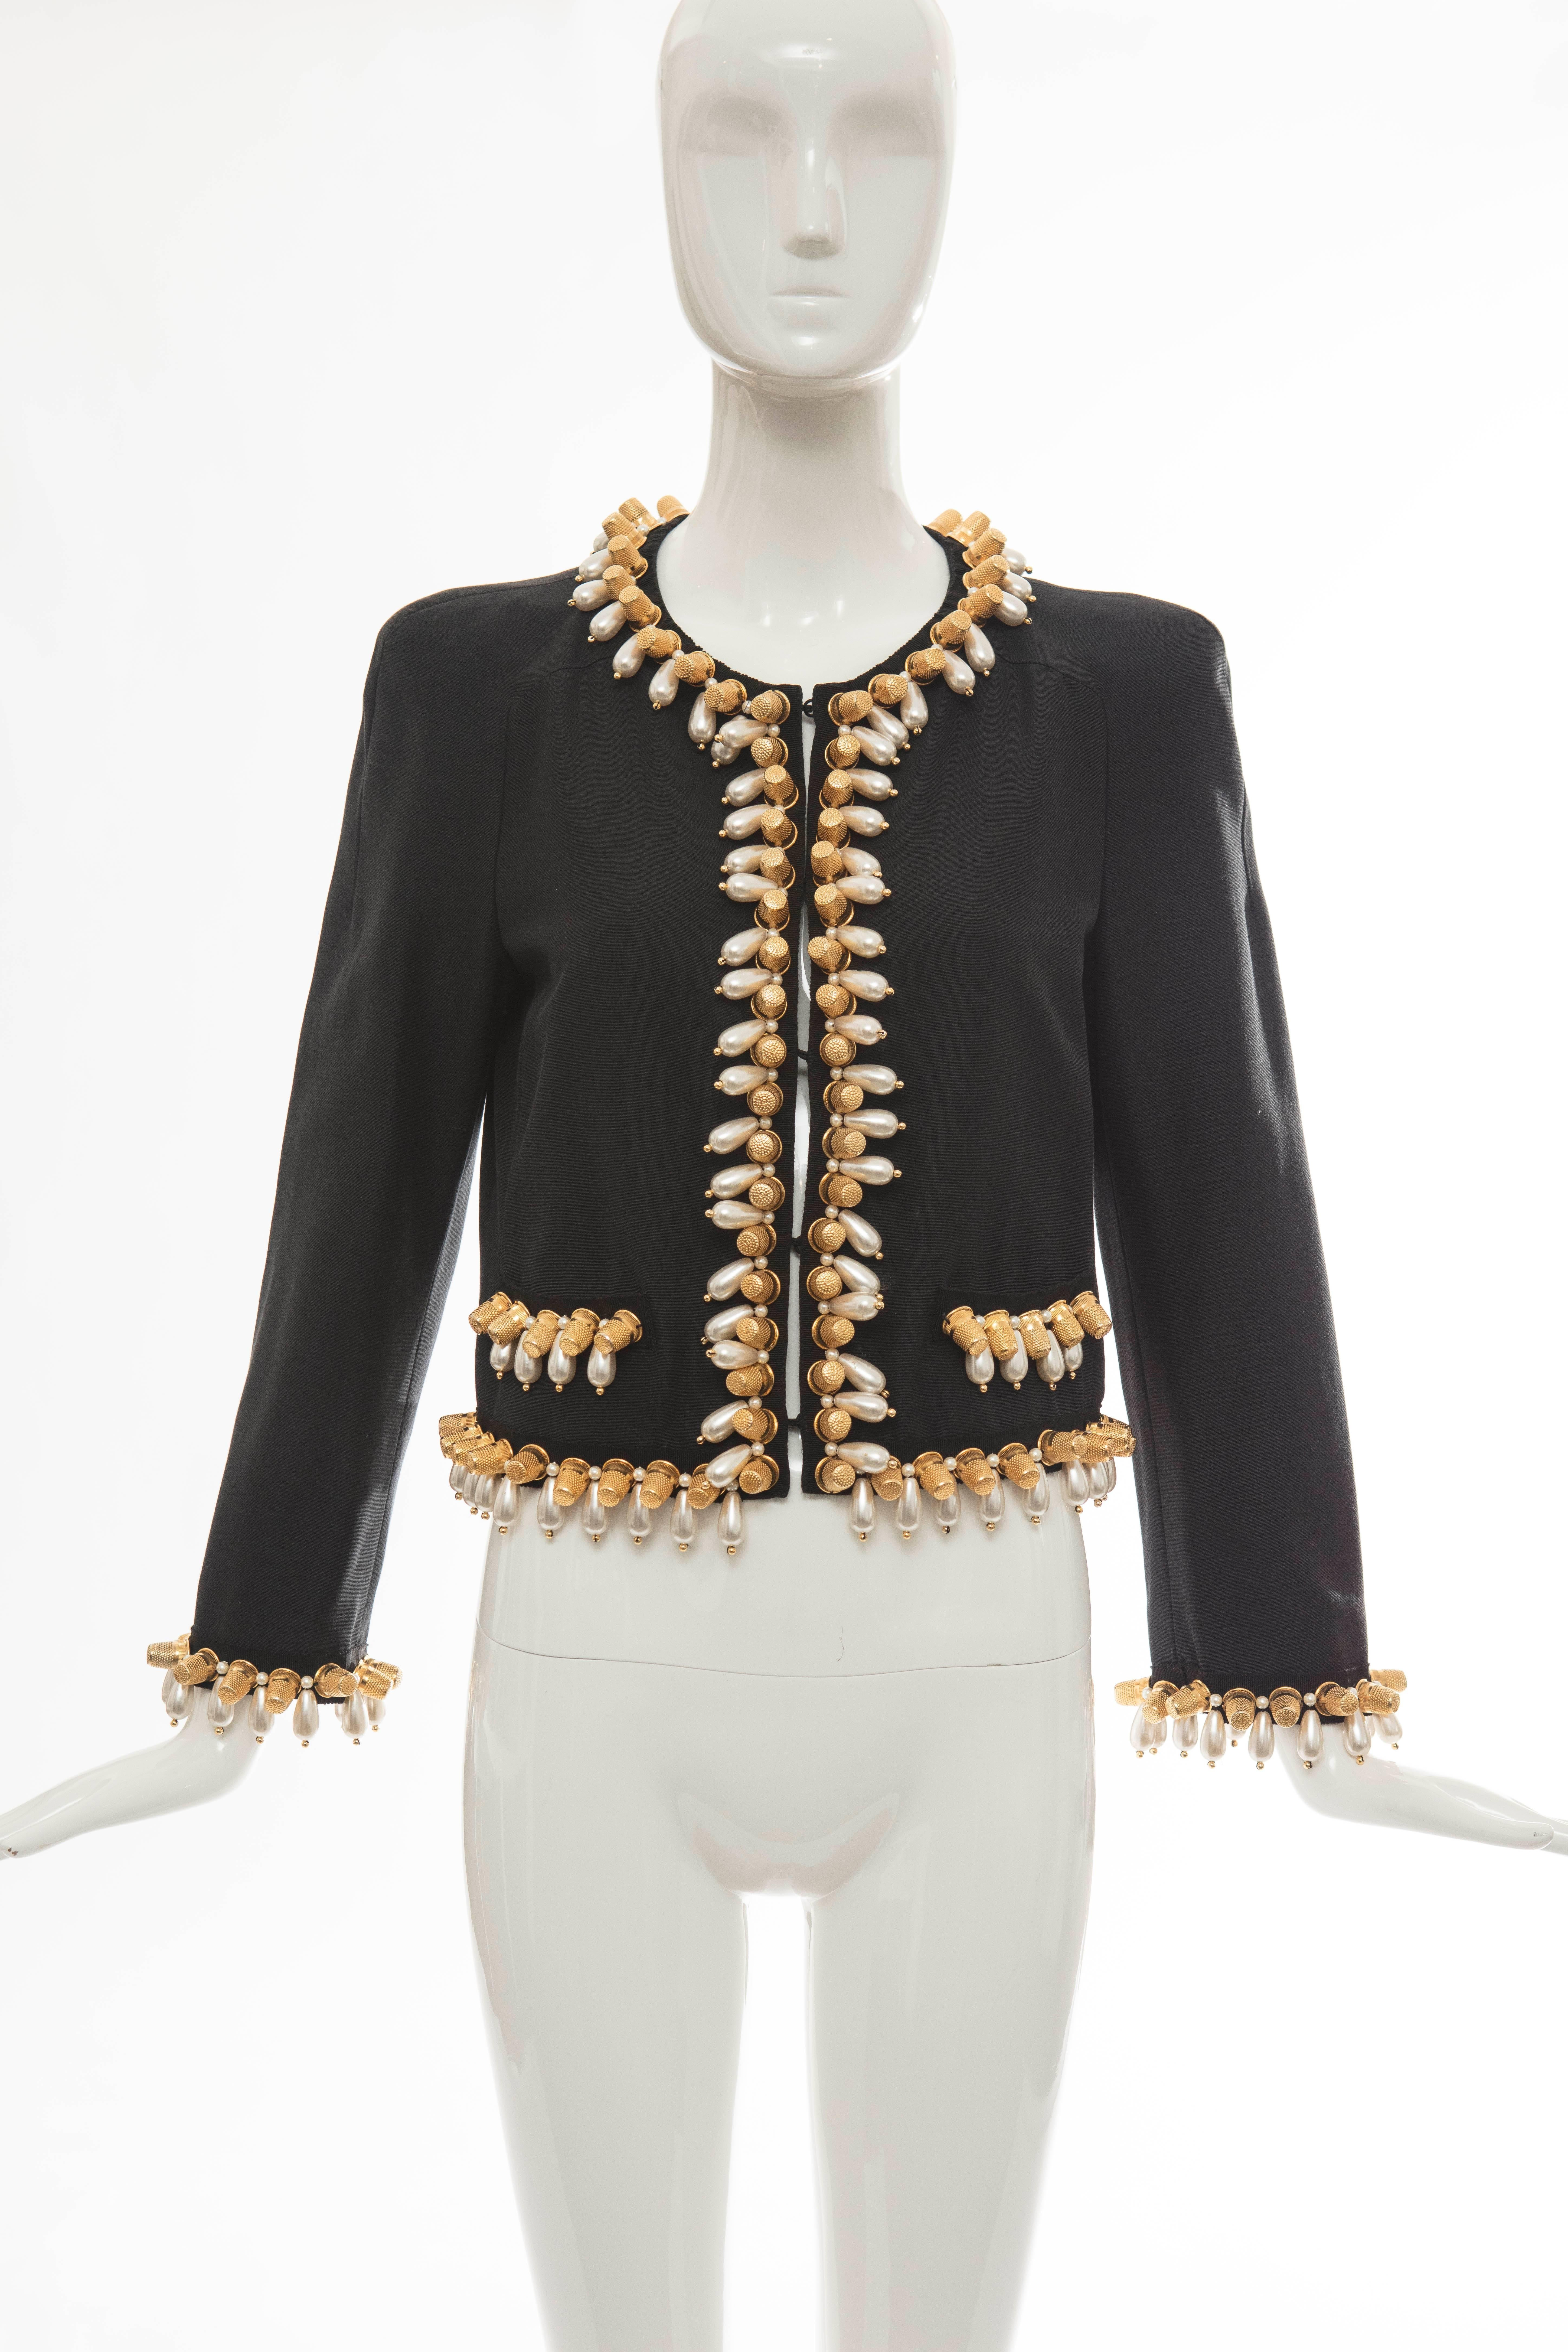 0f94231ff669c Jeremy Scott For Moschino Black Jacket With Thimble And Pearl Adornments  For Sale at 1stdibs